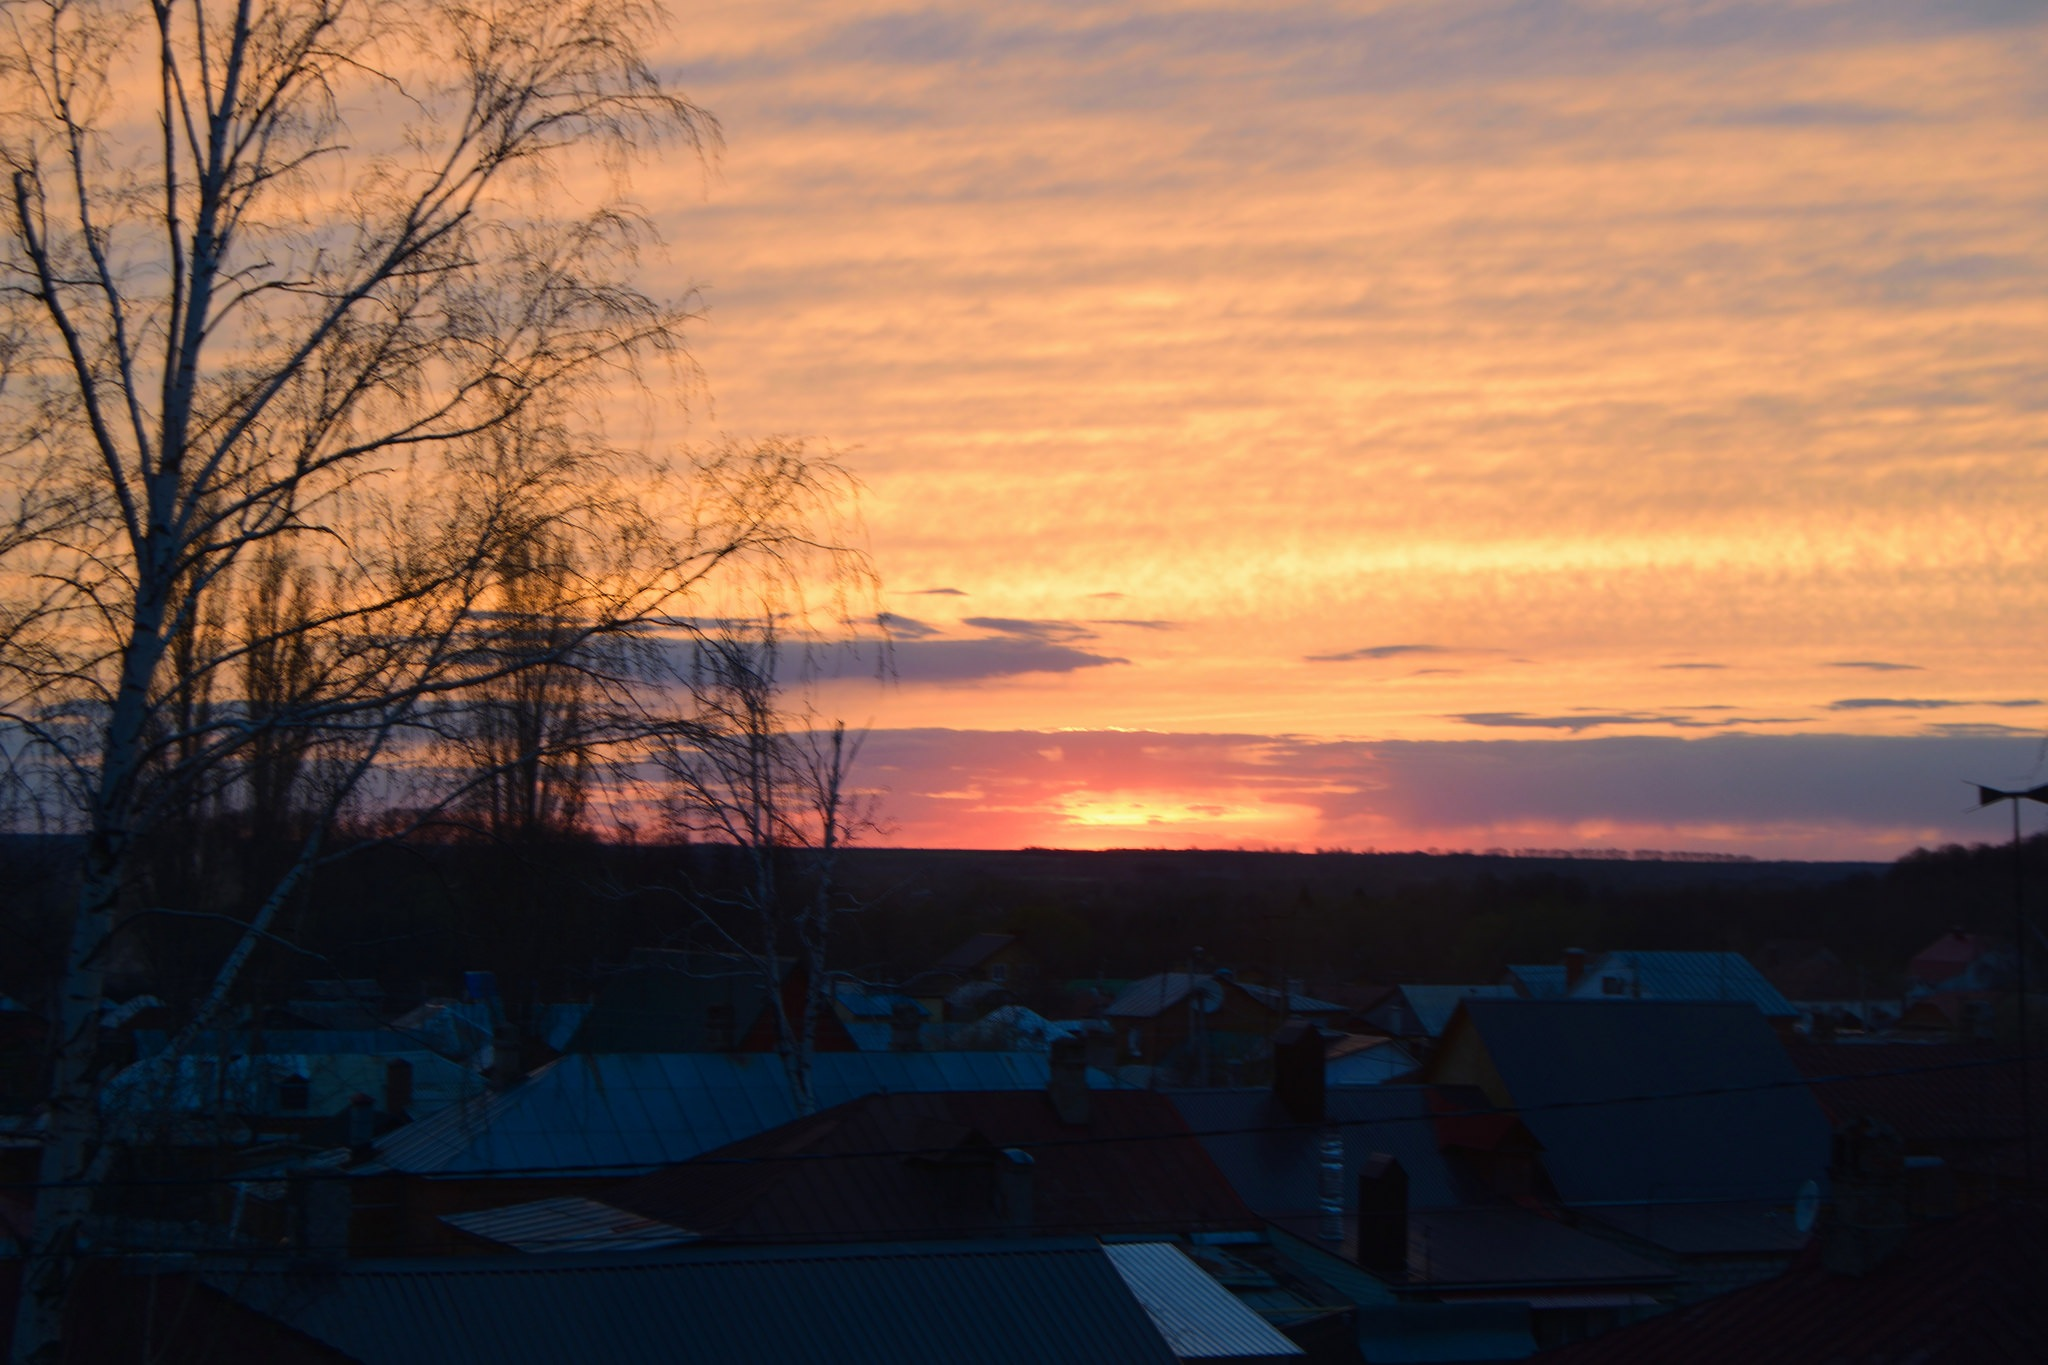 Colorful sunset over the roofs. by Andrey Gordeeff